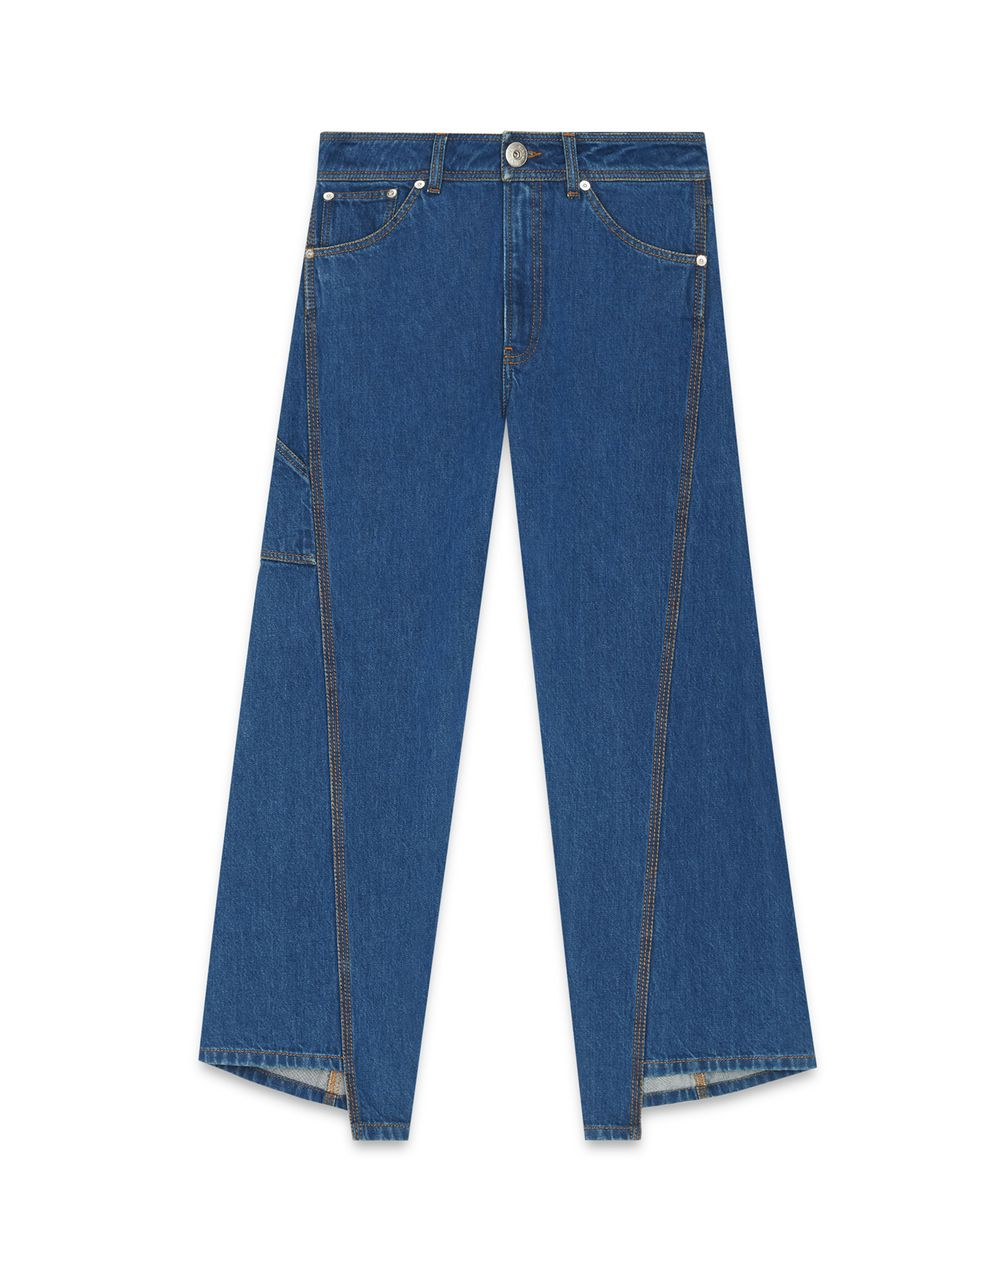 TWISTED STITCHES 7/8 DENIM PANTS - Lanvin